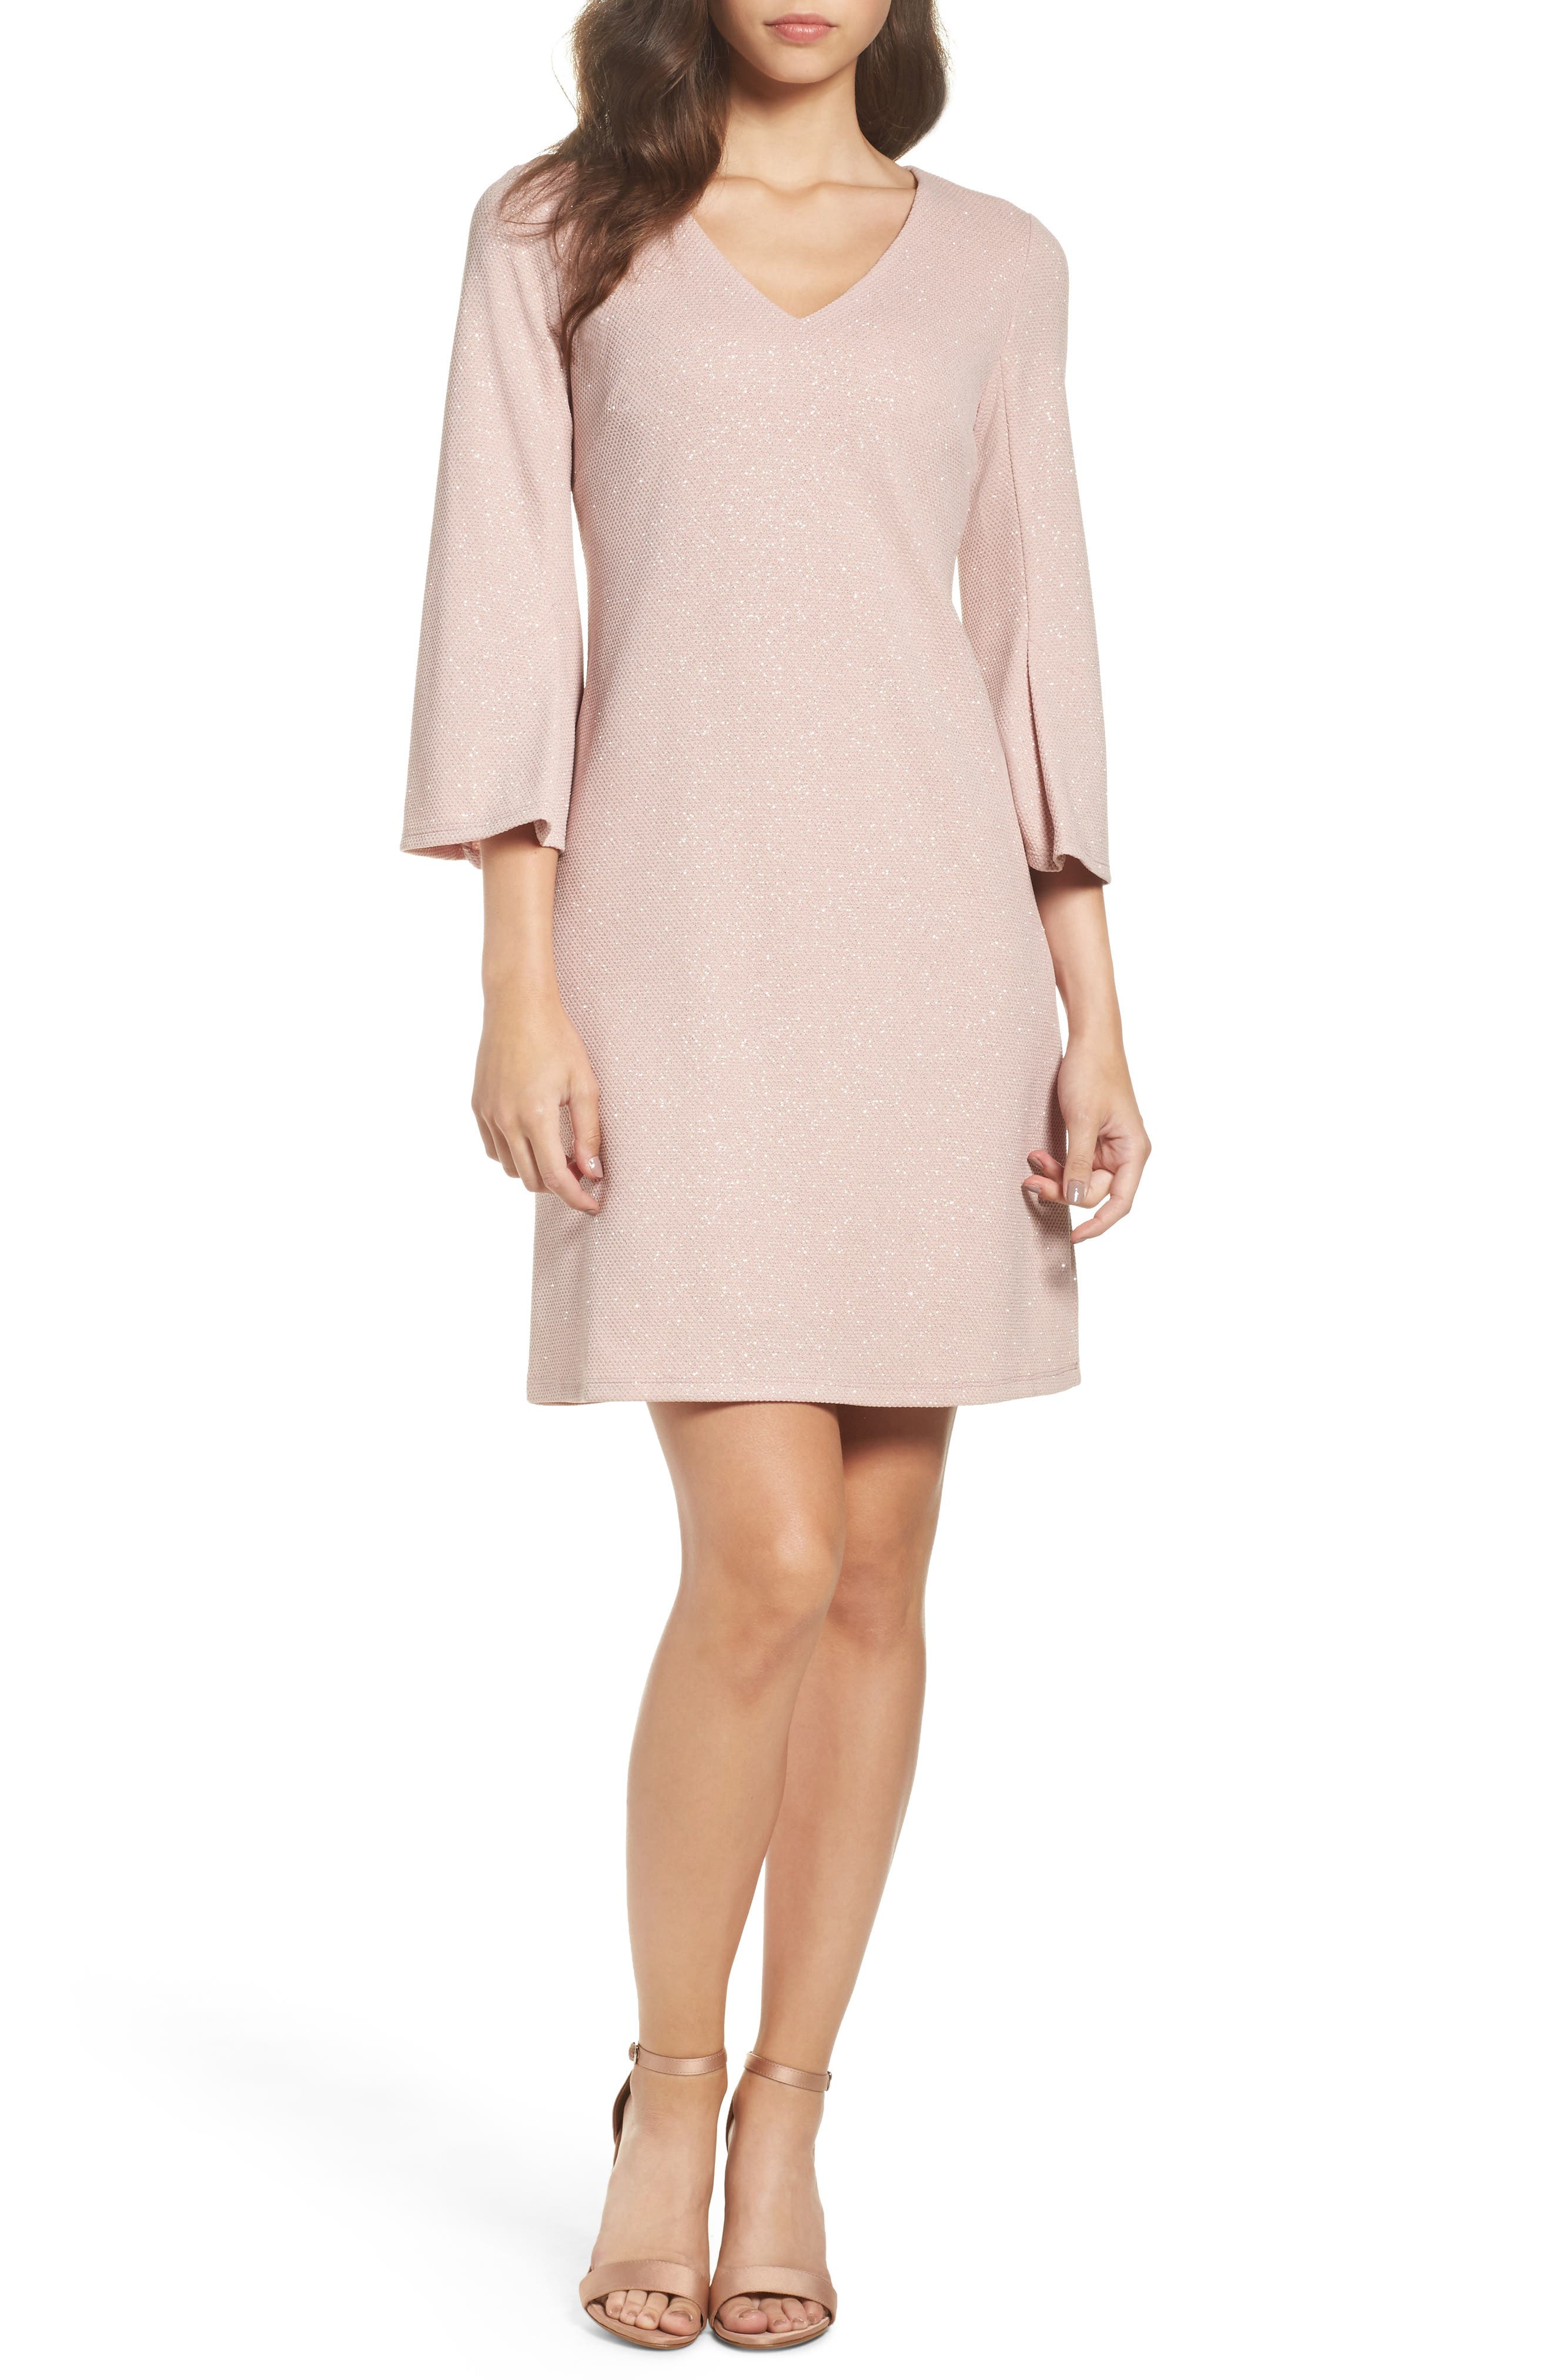 Lo lo lord and taylor party dresses - Lo Lo Lord And Taylor Party Dresses 15